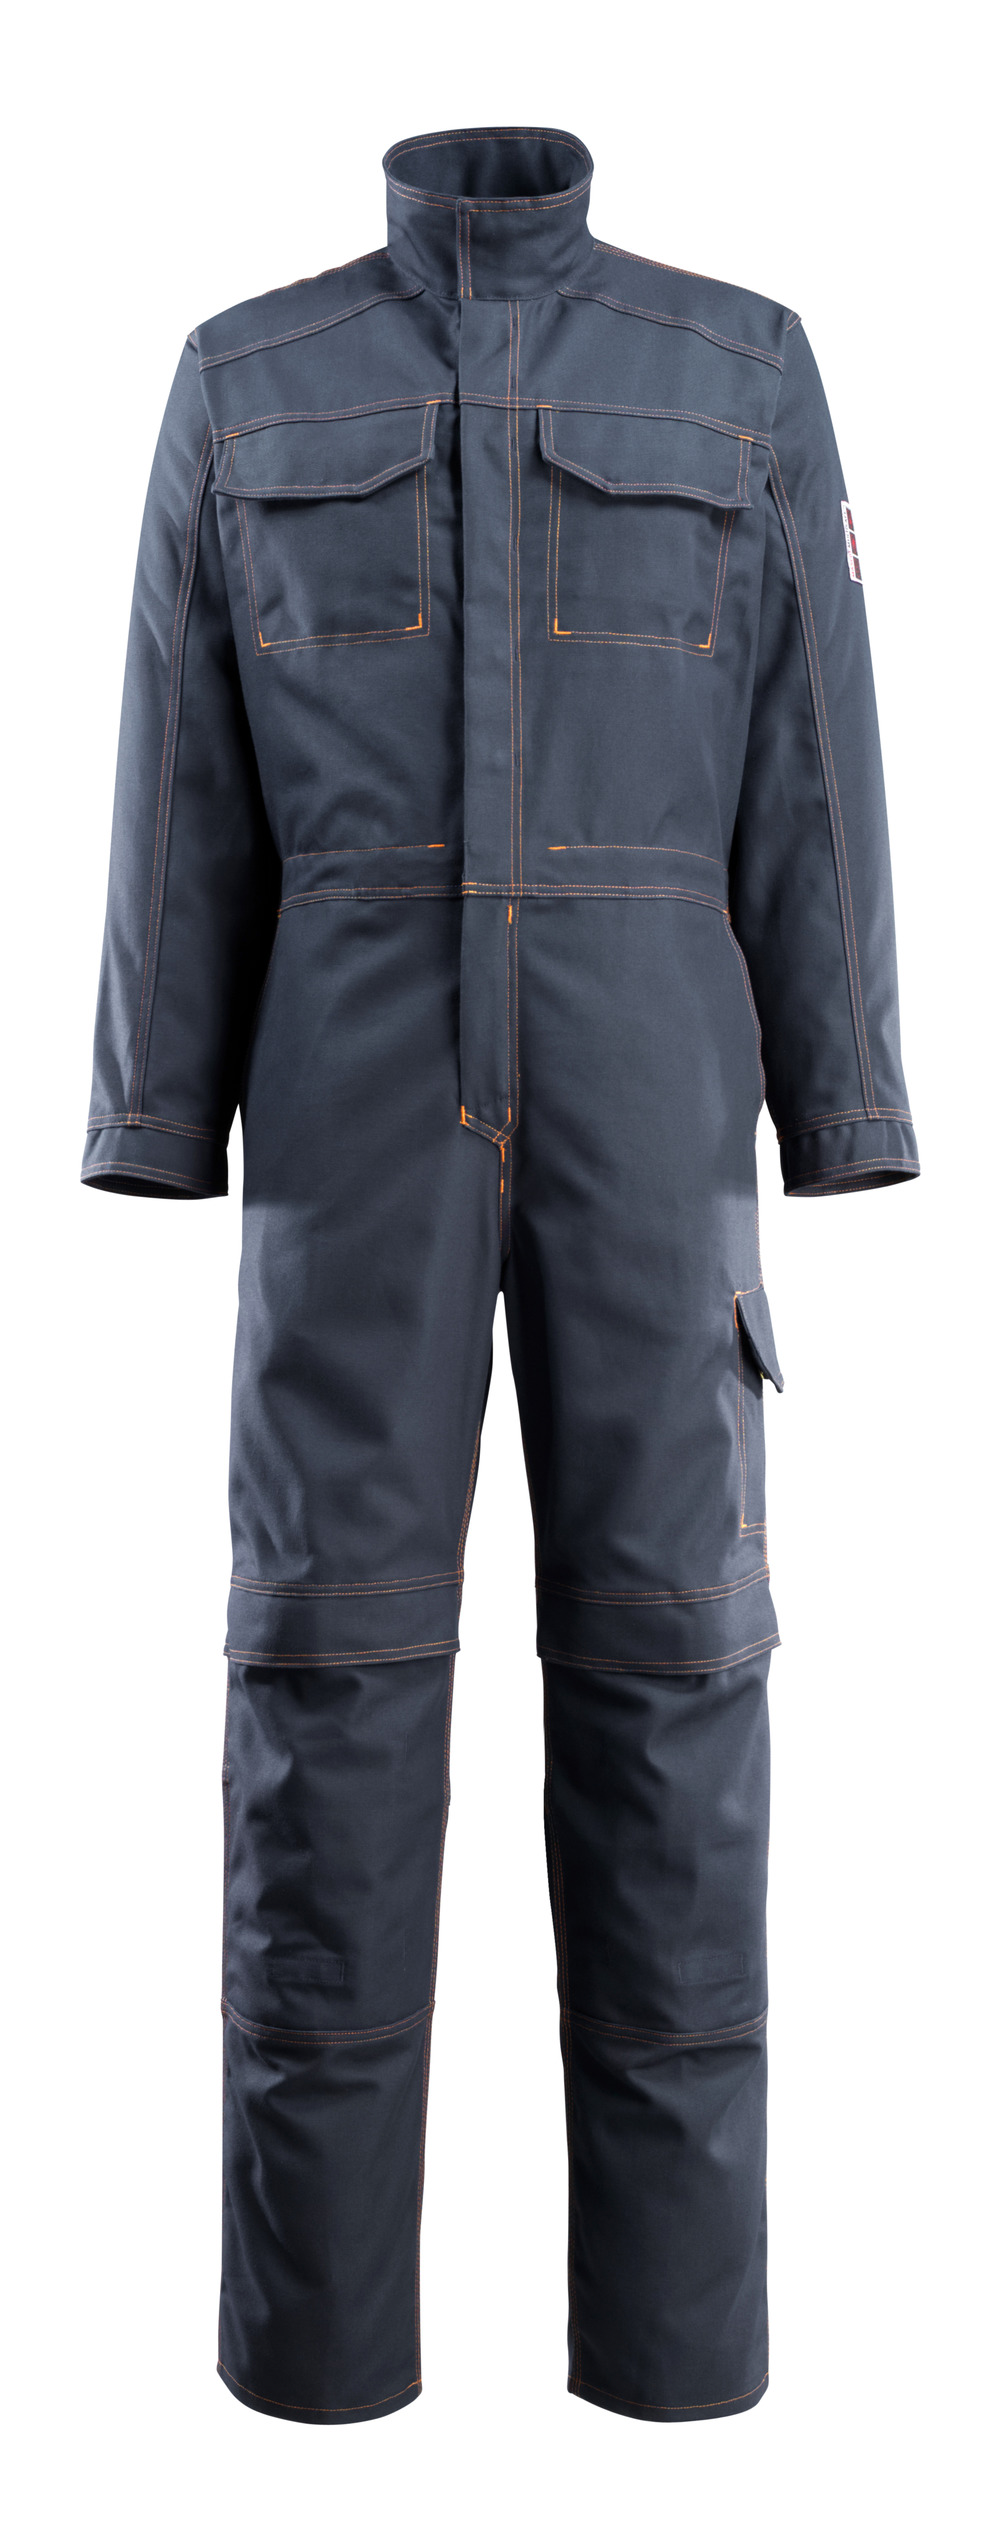 06619-135-010 Boilersuit with kneepad pockets - dark navy